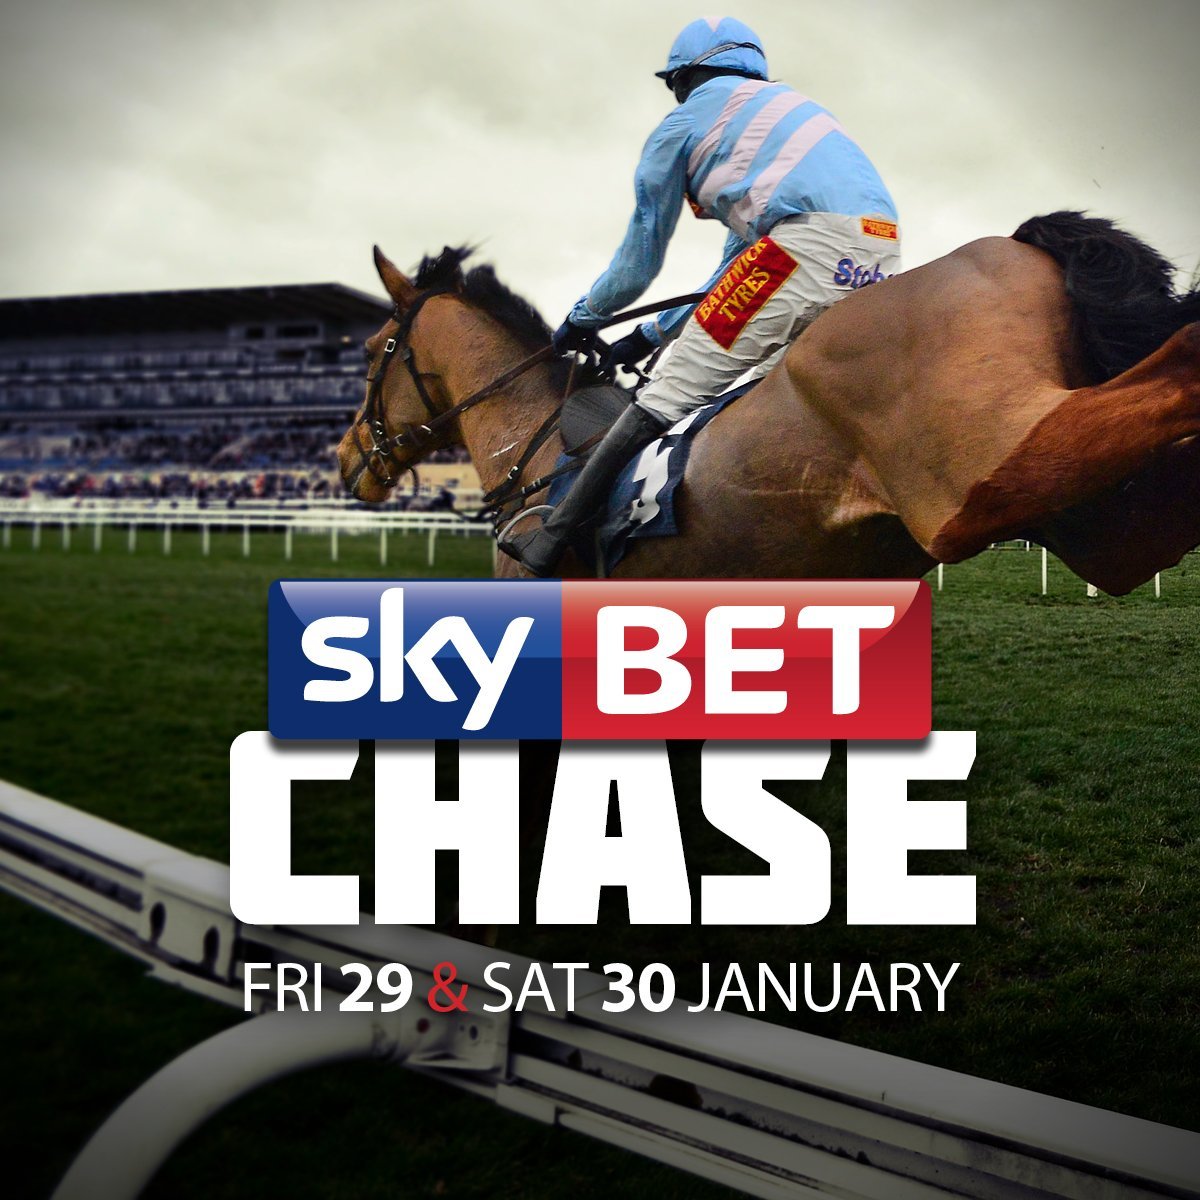 WIN an overnight stay at the beautiful @crownbawtry & 2 x County Tickets to @SkyBet Chase 30 Jan. RT to enter. https://t.co/XJNtAeMFQp